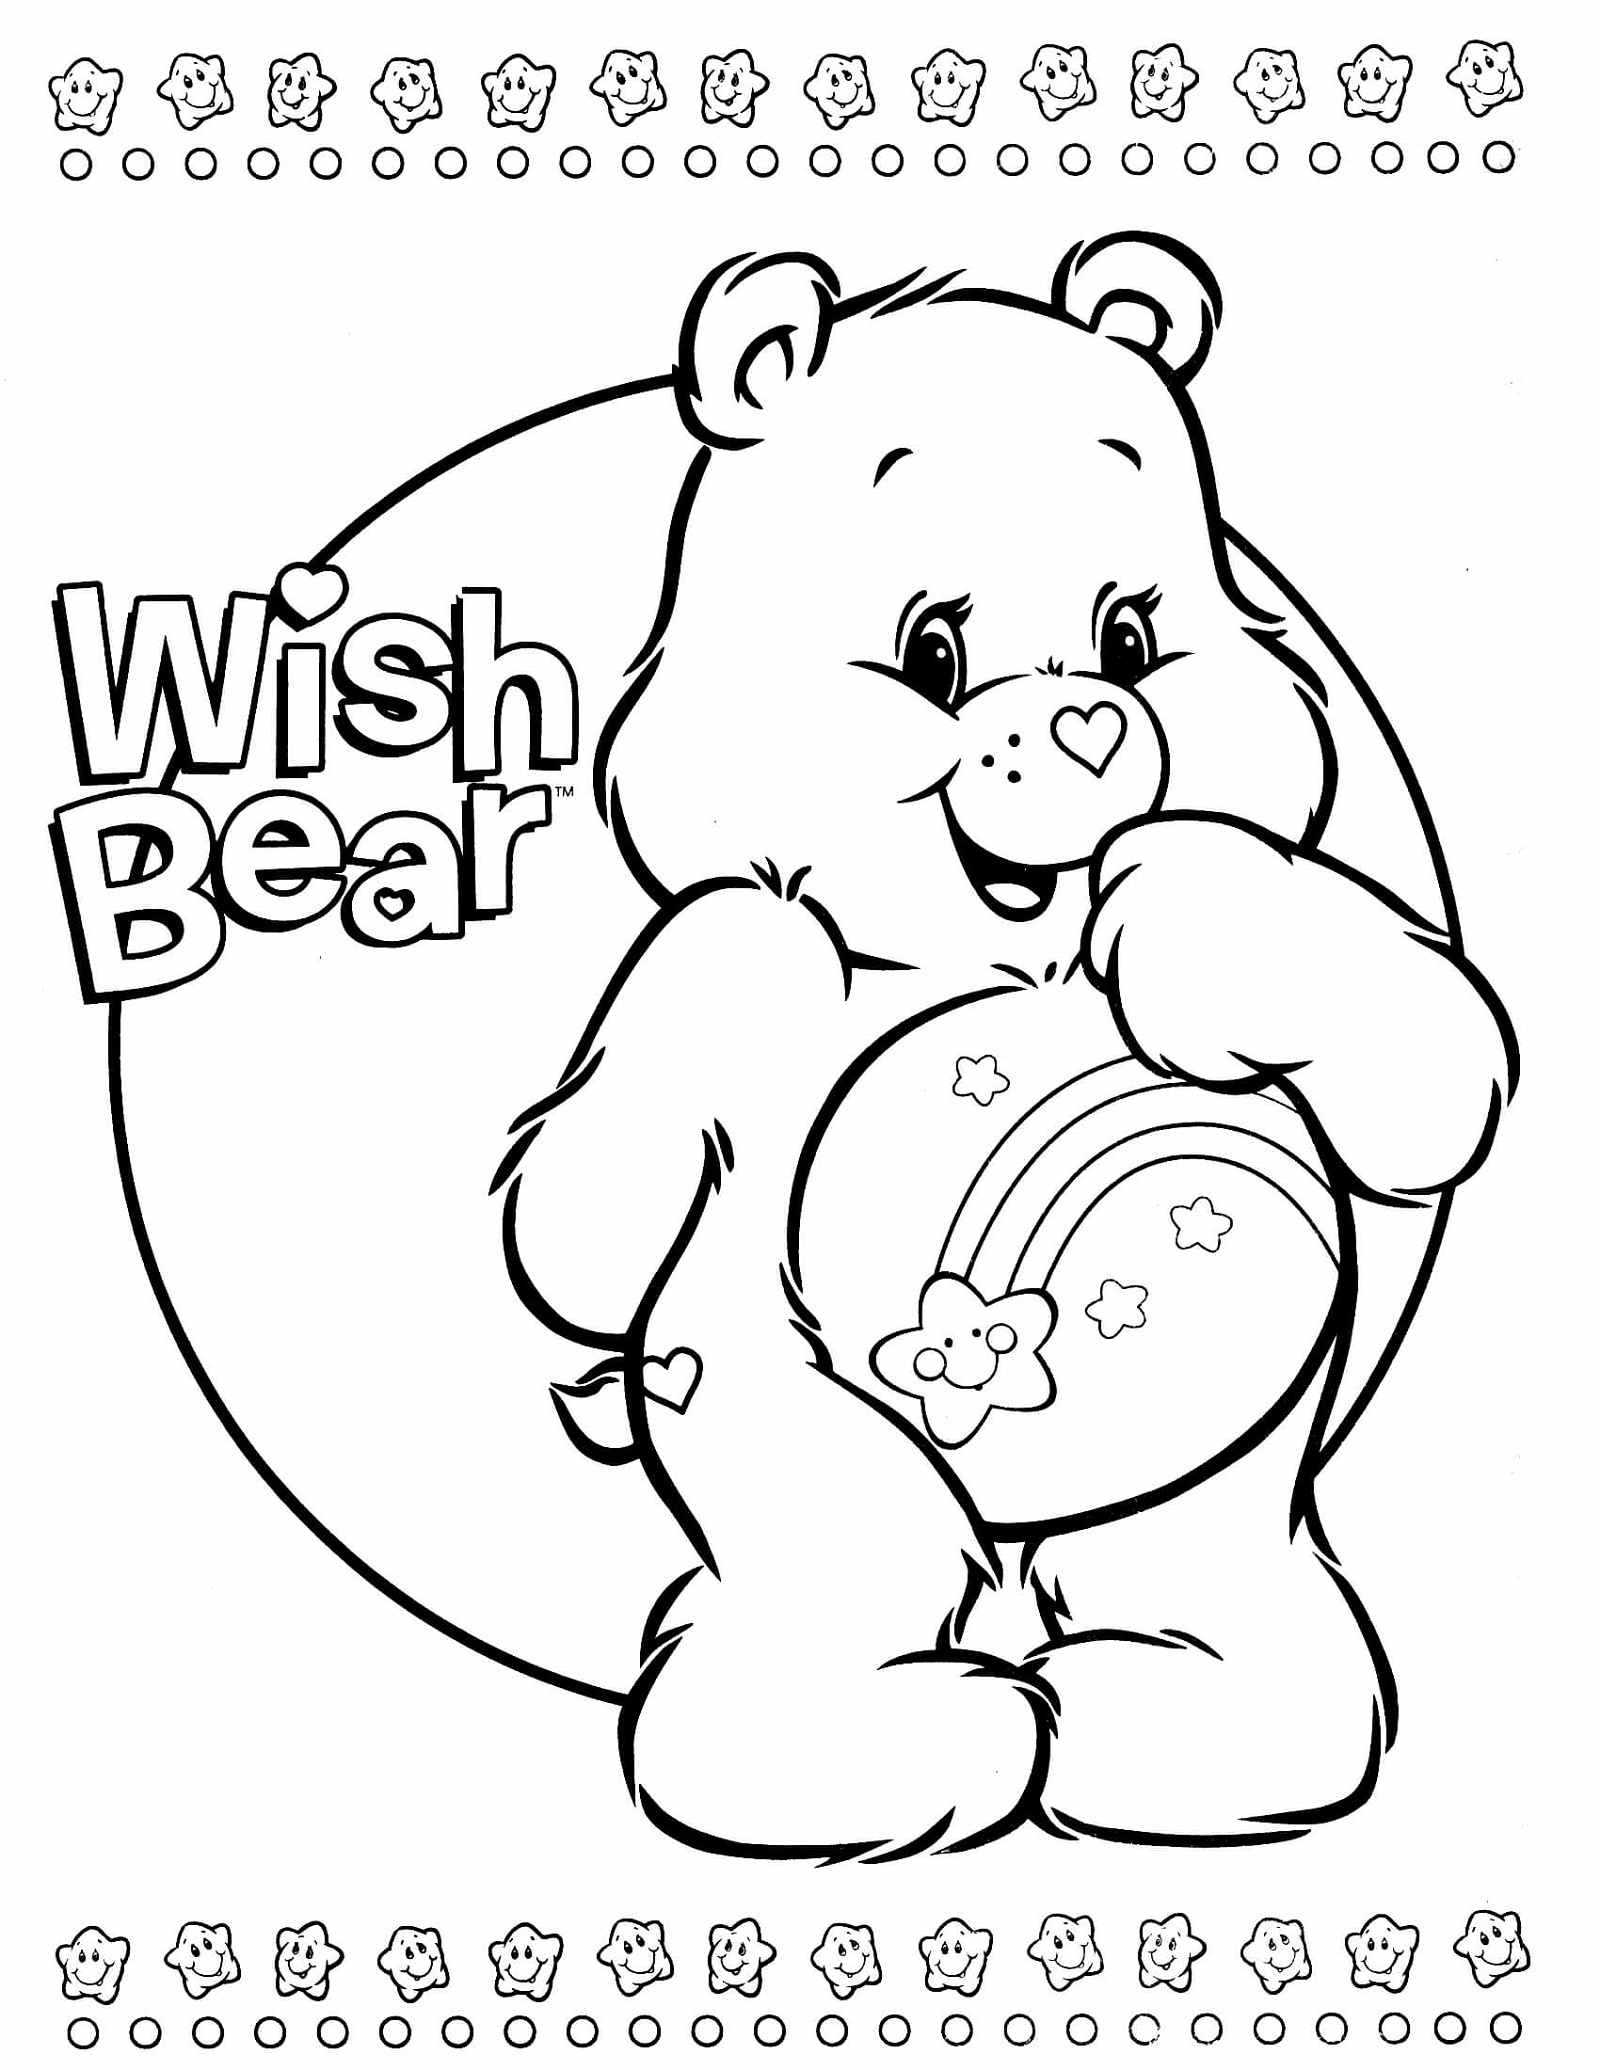 Care Bear Coloring Pages Wish Bear